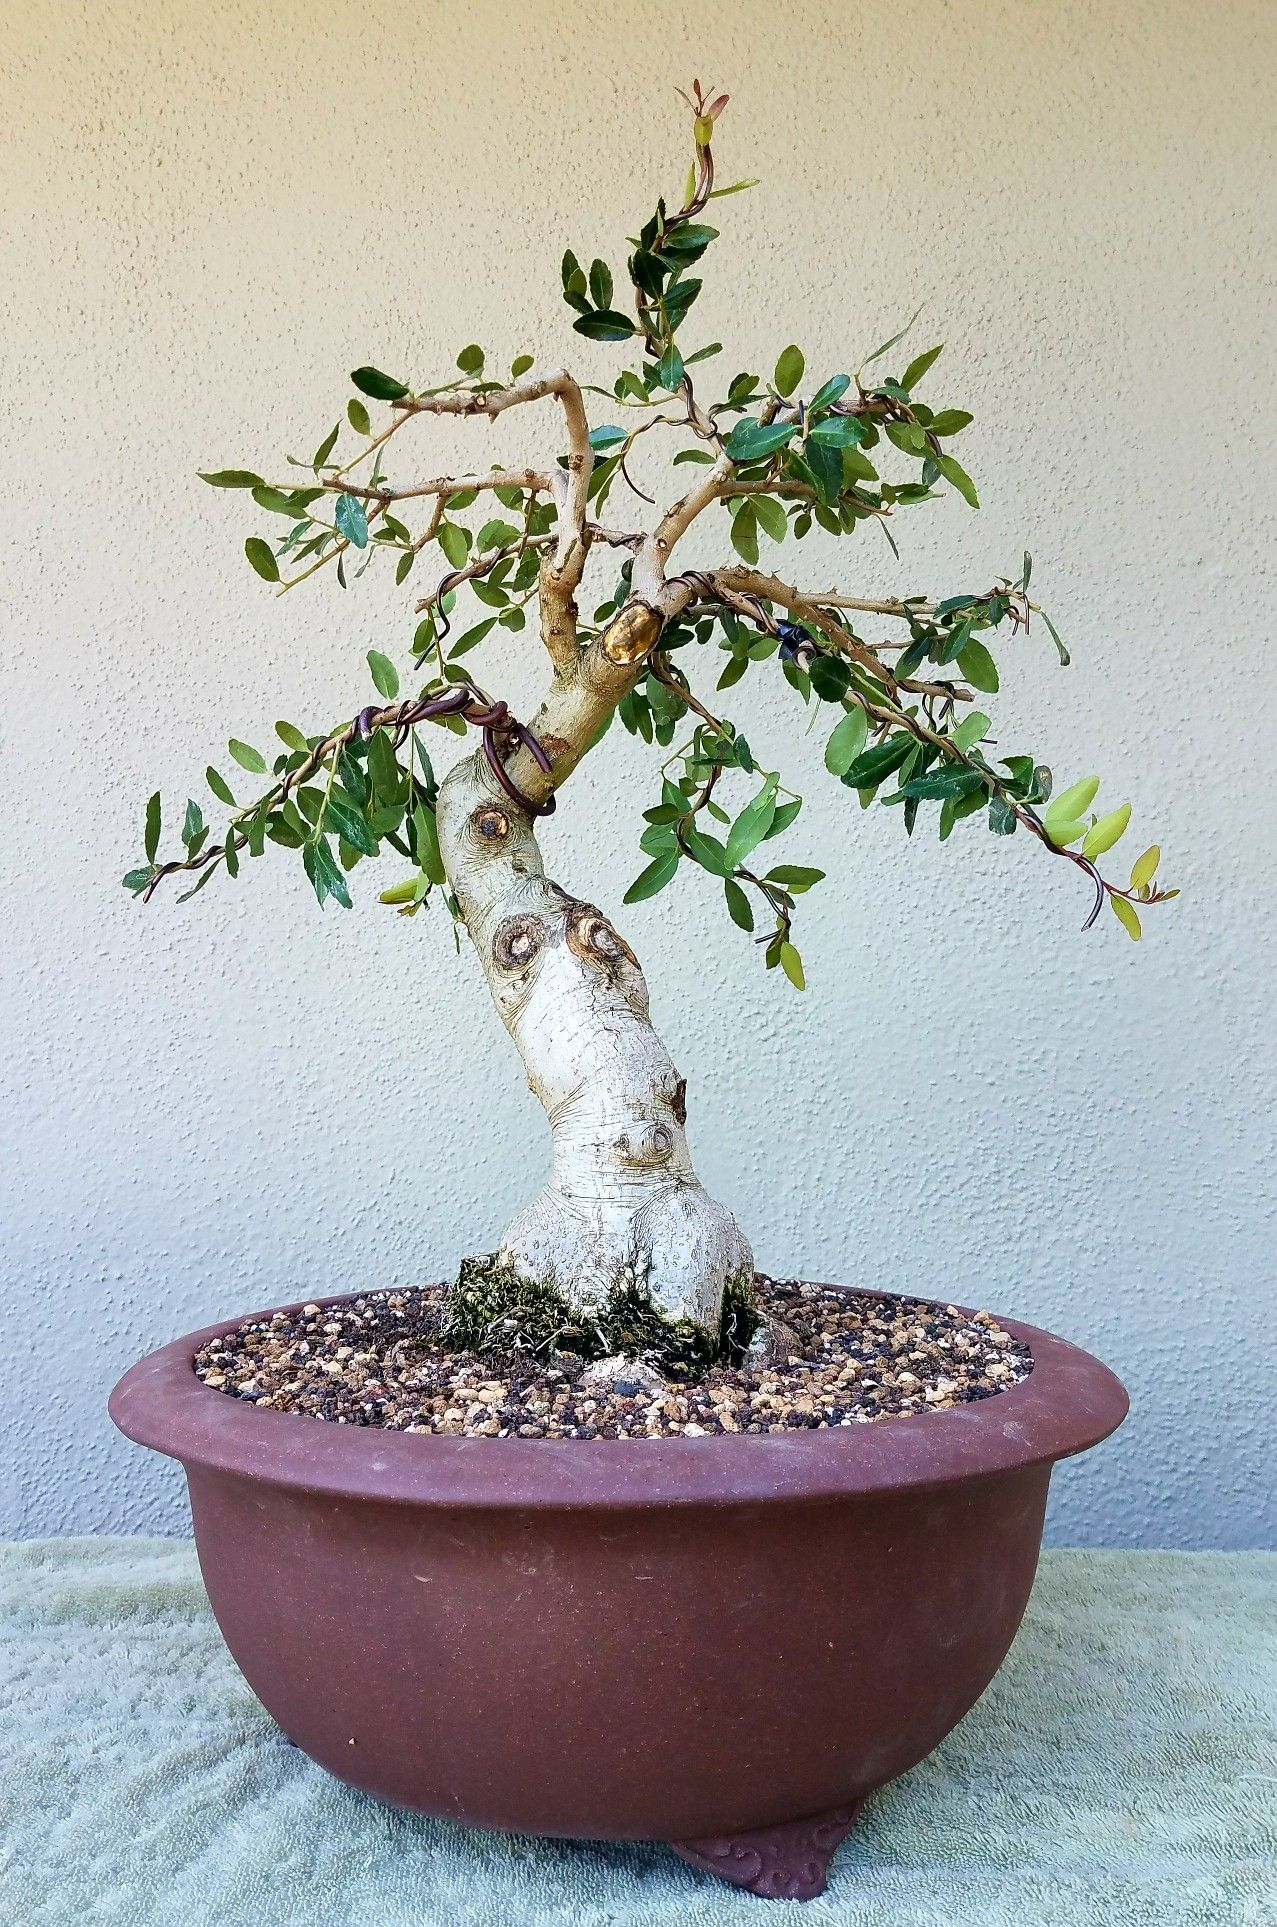 Picture 4 - I did some hard pruning and wiring on my Yaupon Holly pre-